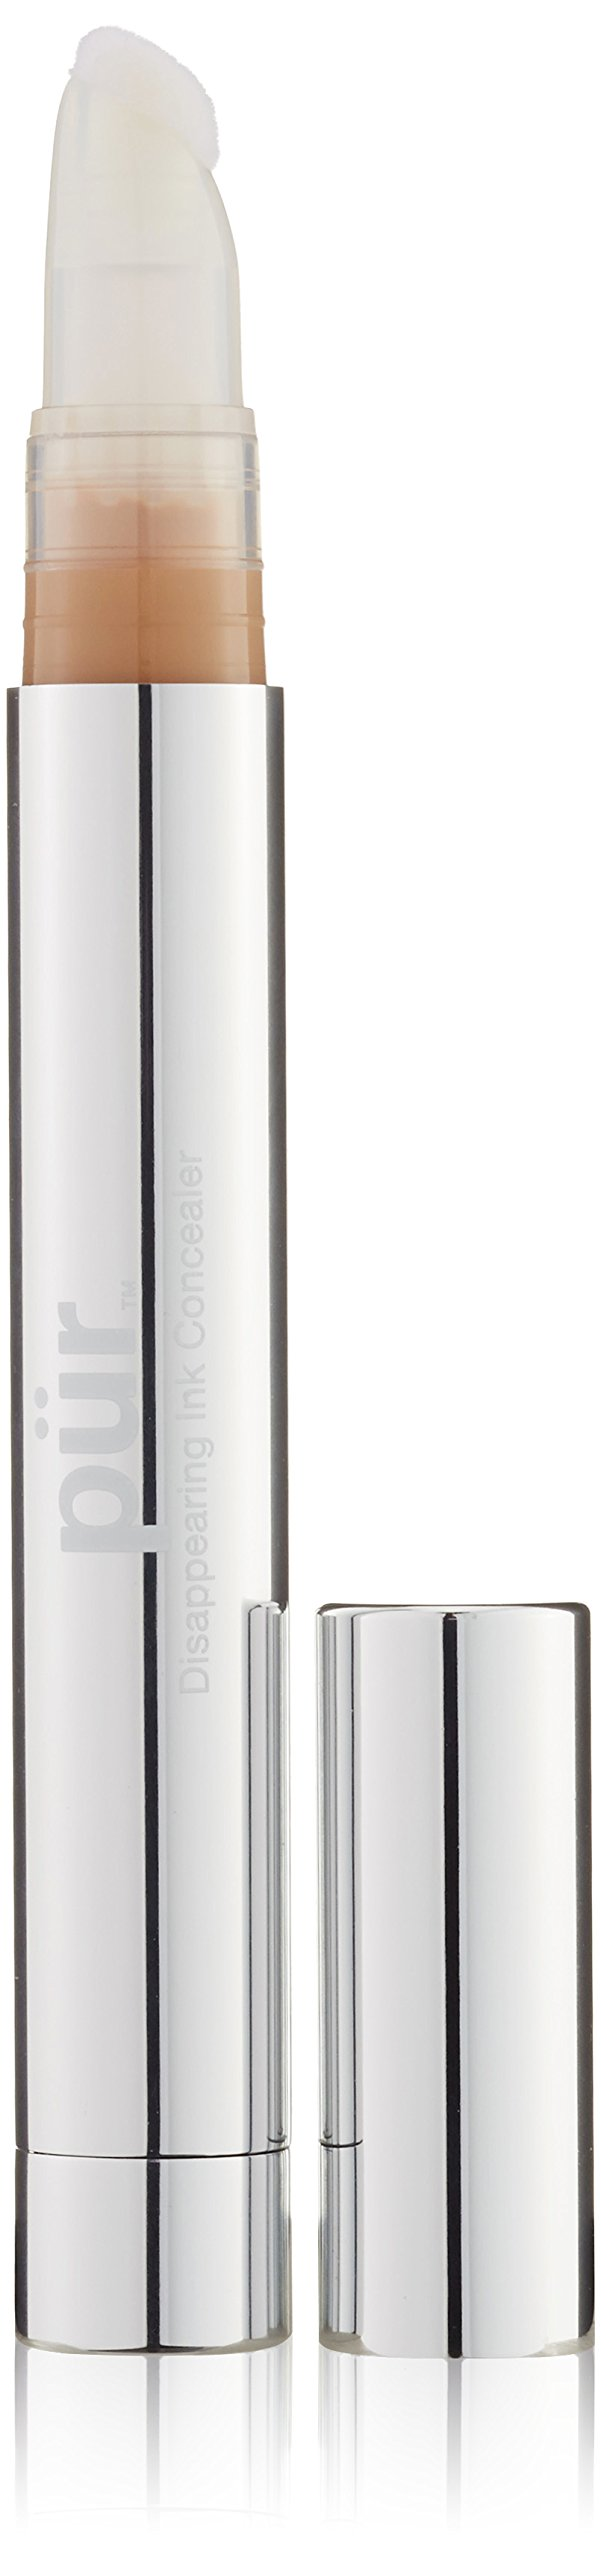 PÜR Disappearing Ink 4-in-1 Concealer Pen in Light, 0.12 Fluid Ounce